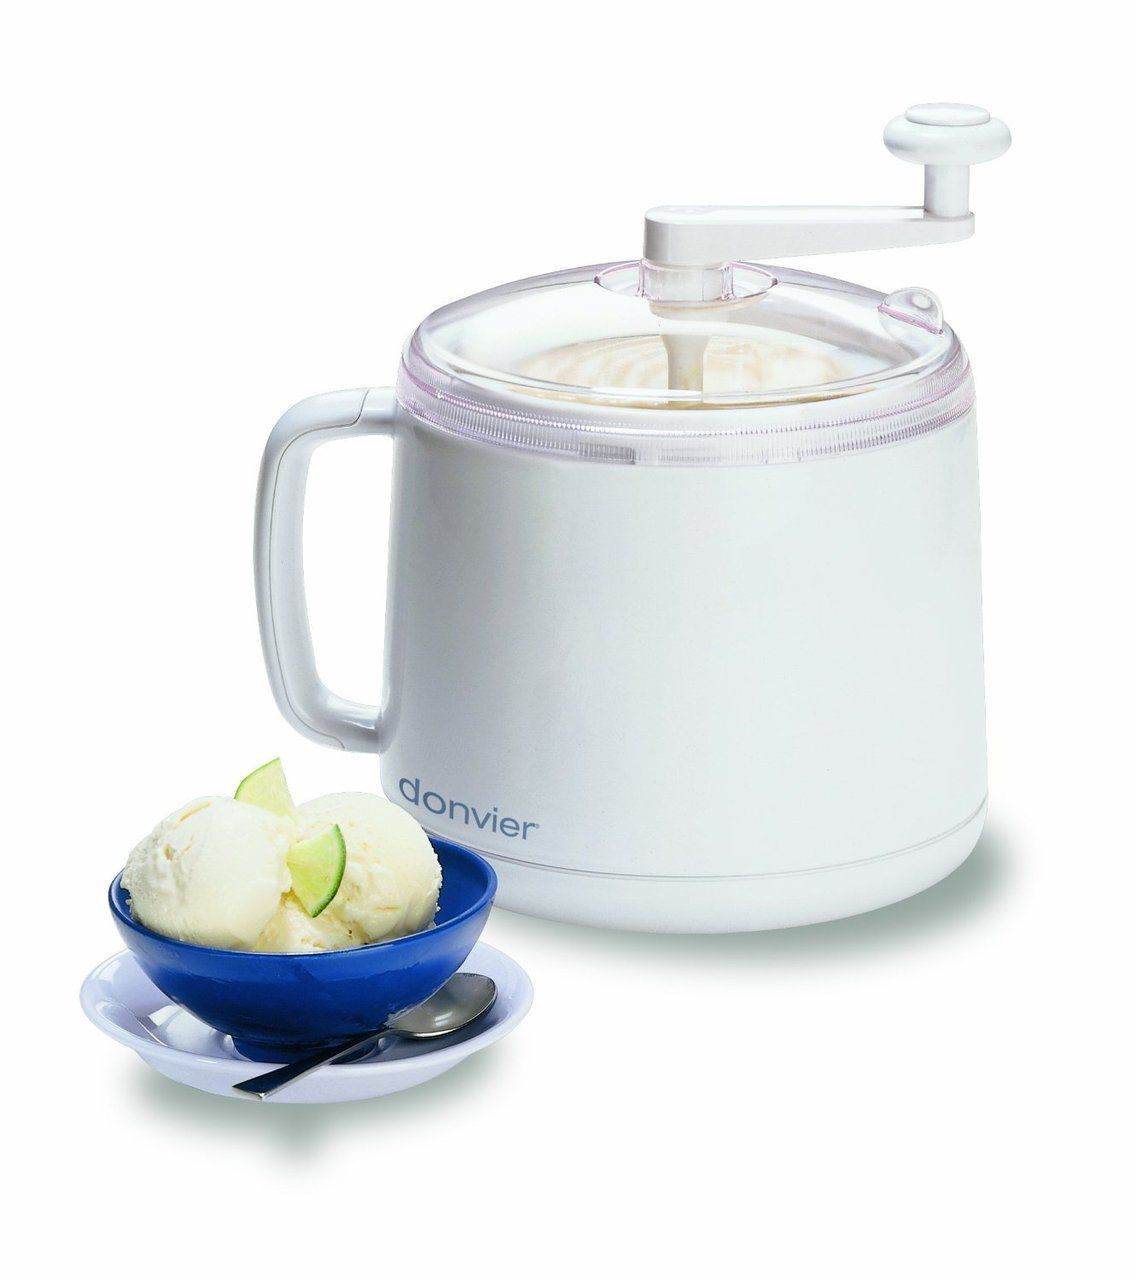 DONVIER Manual Ice Cream Maker 1-Quart White $59.95 OUT THE DOOR ...